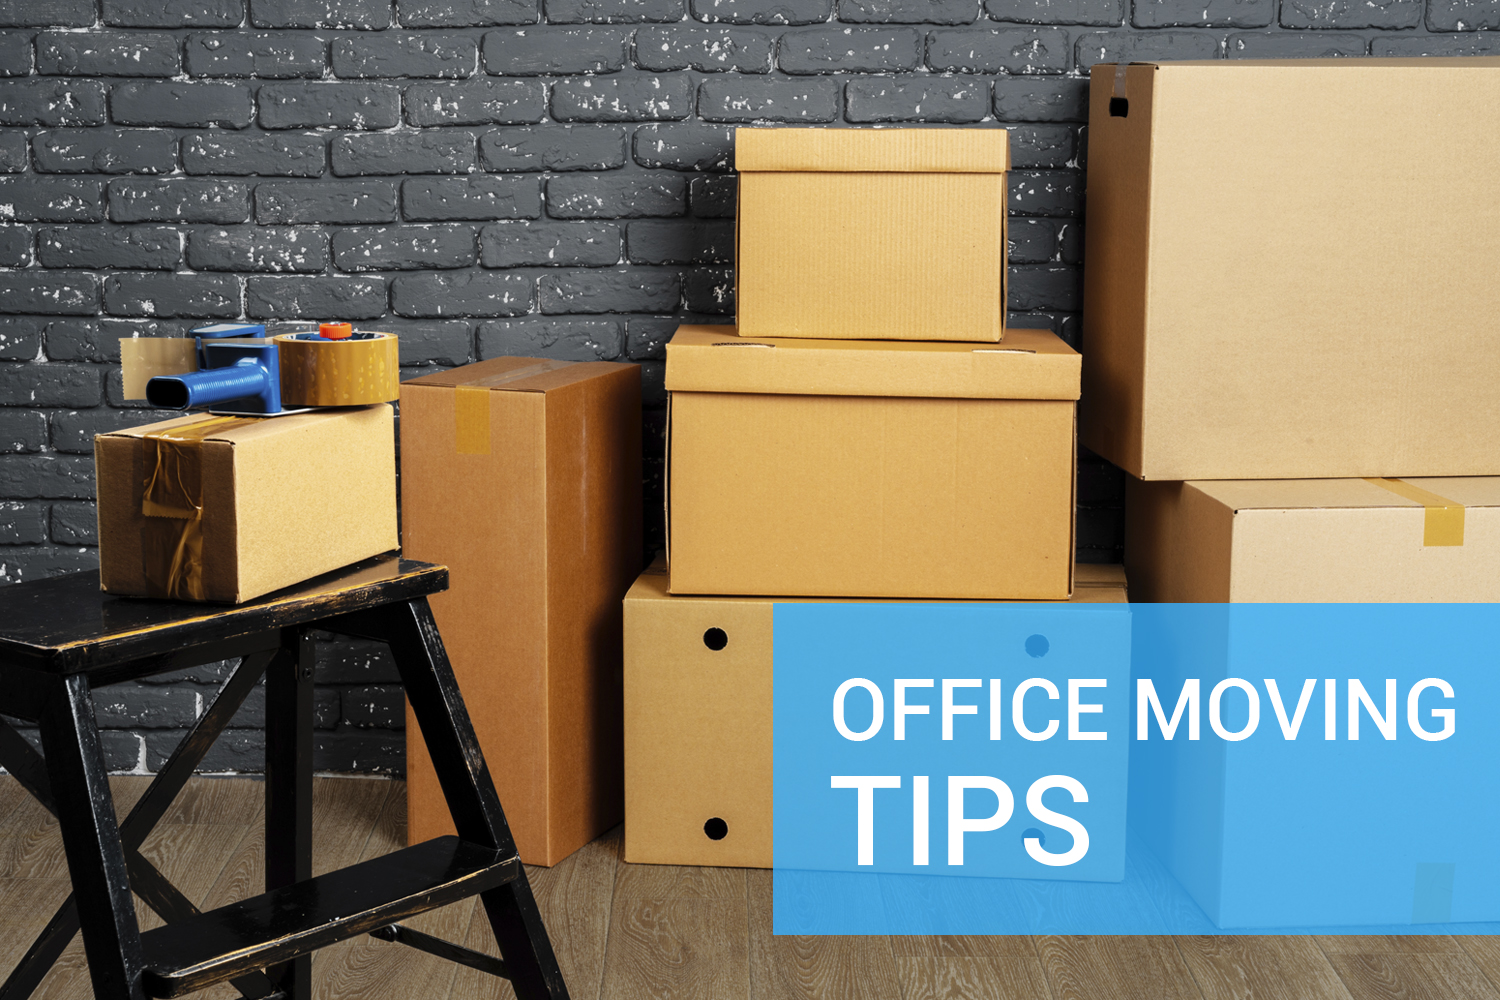 Office Moving Tips to Follow for Your Commercial Relocation